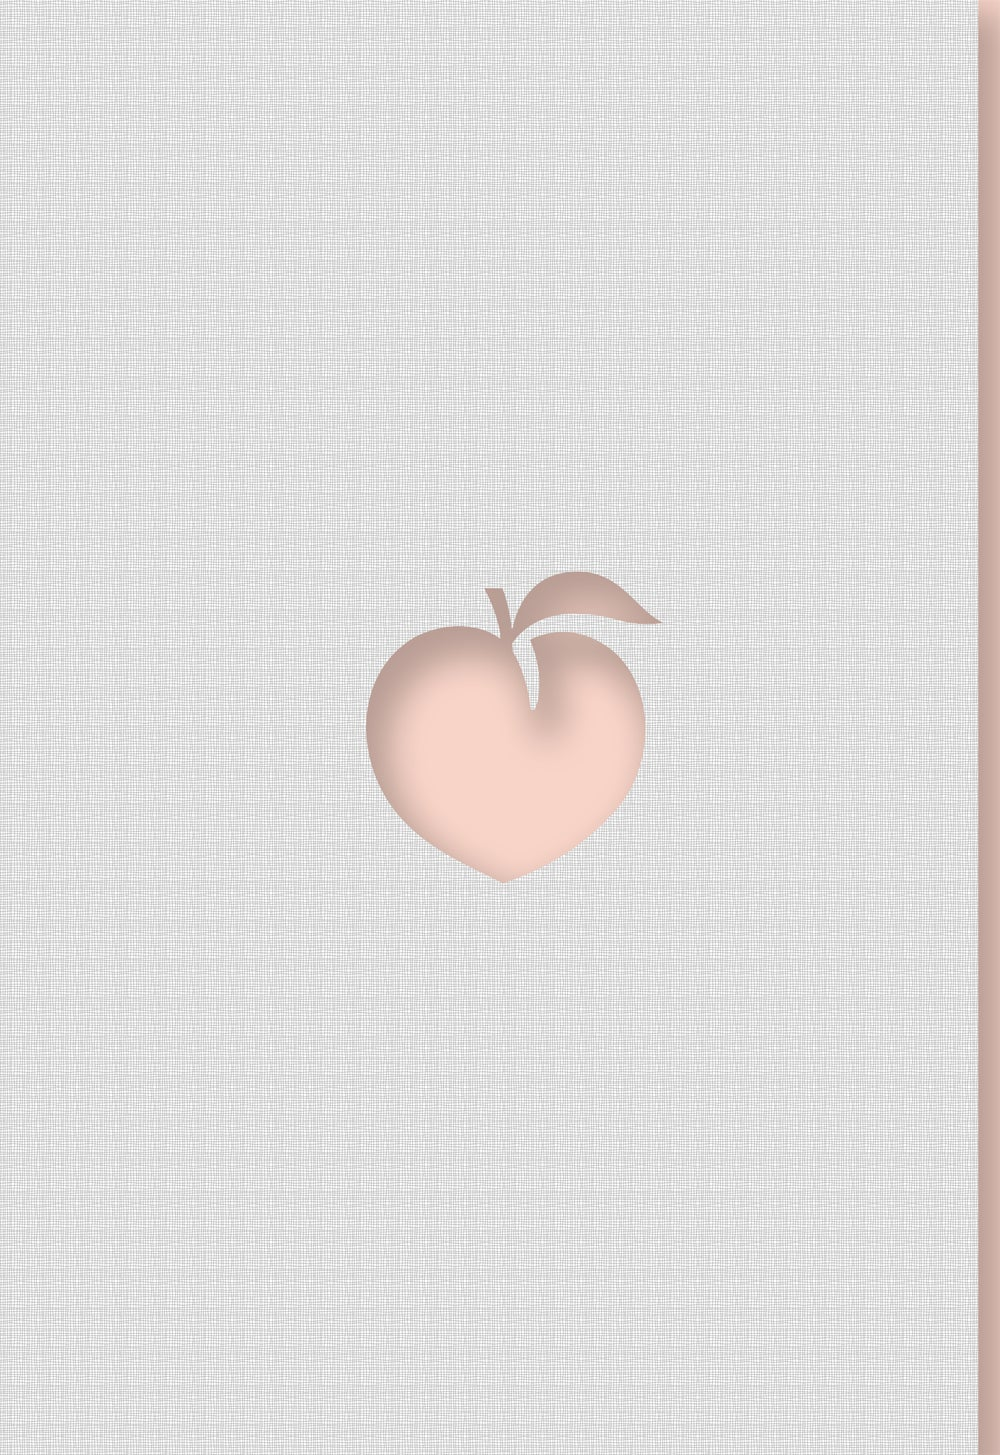 """Image of """"the peach poems"""" by Terrence Abrahams"""